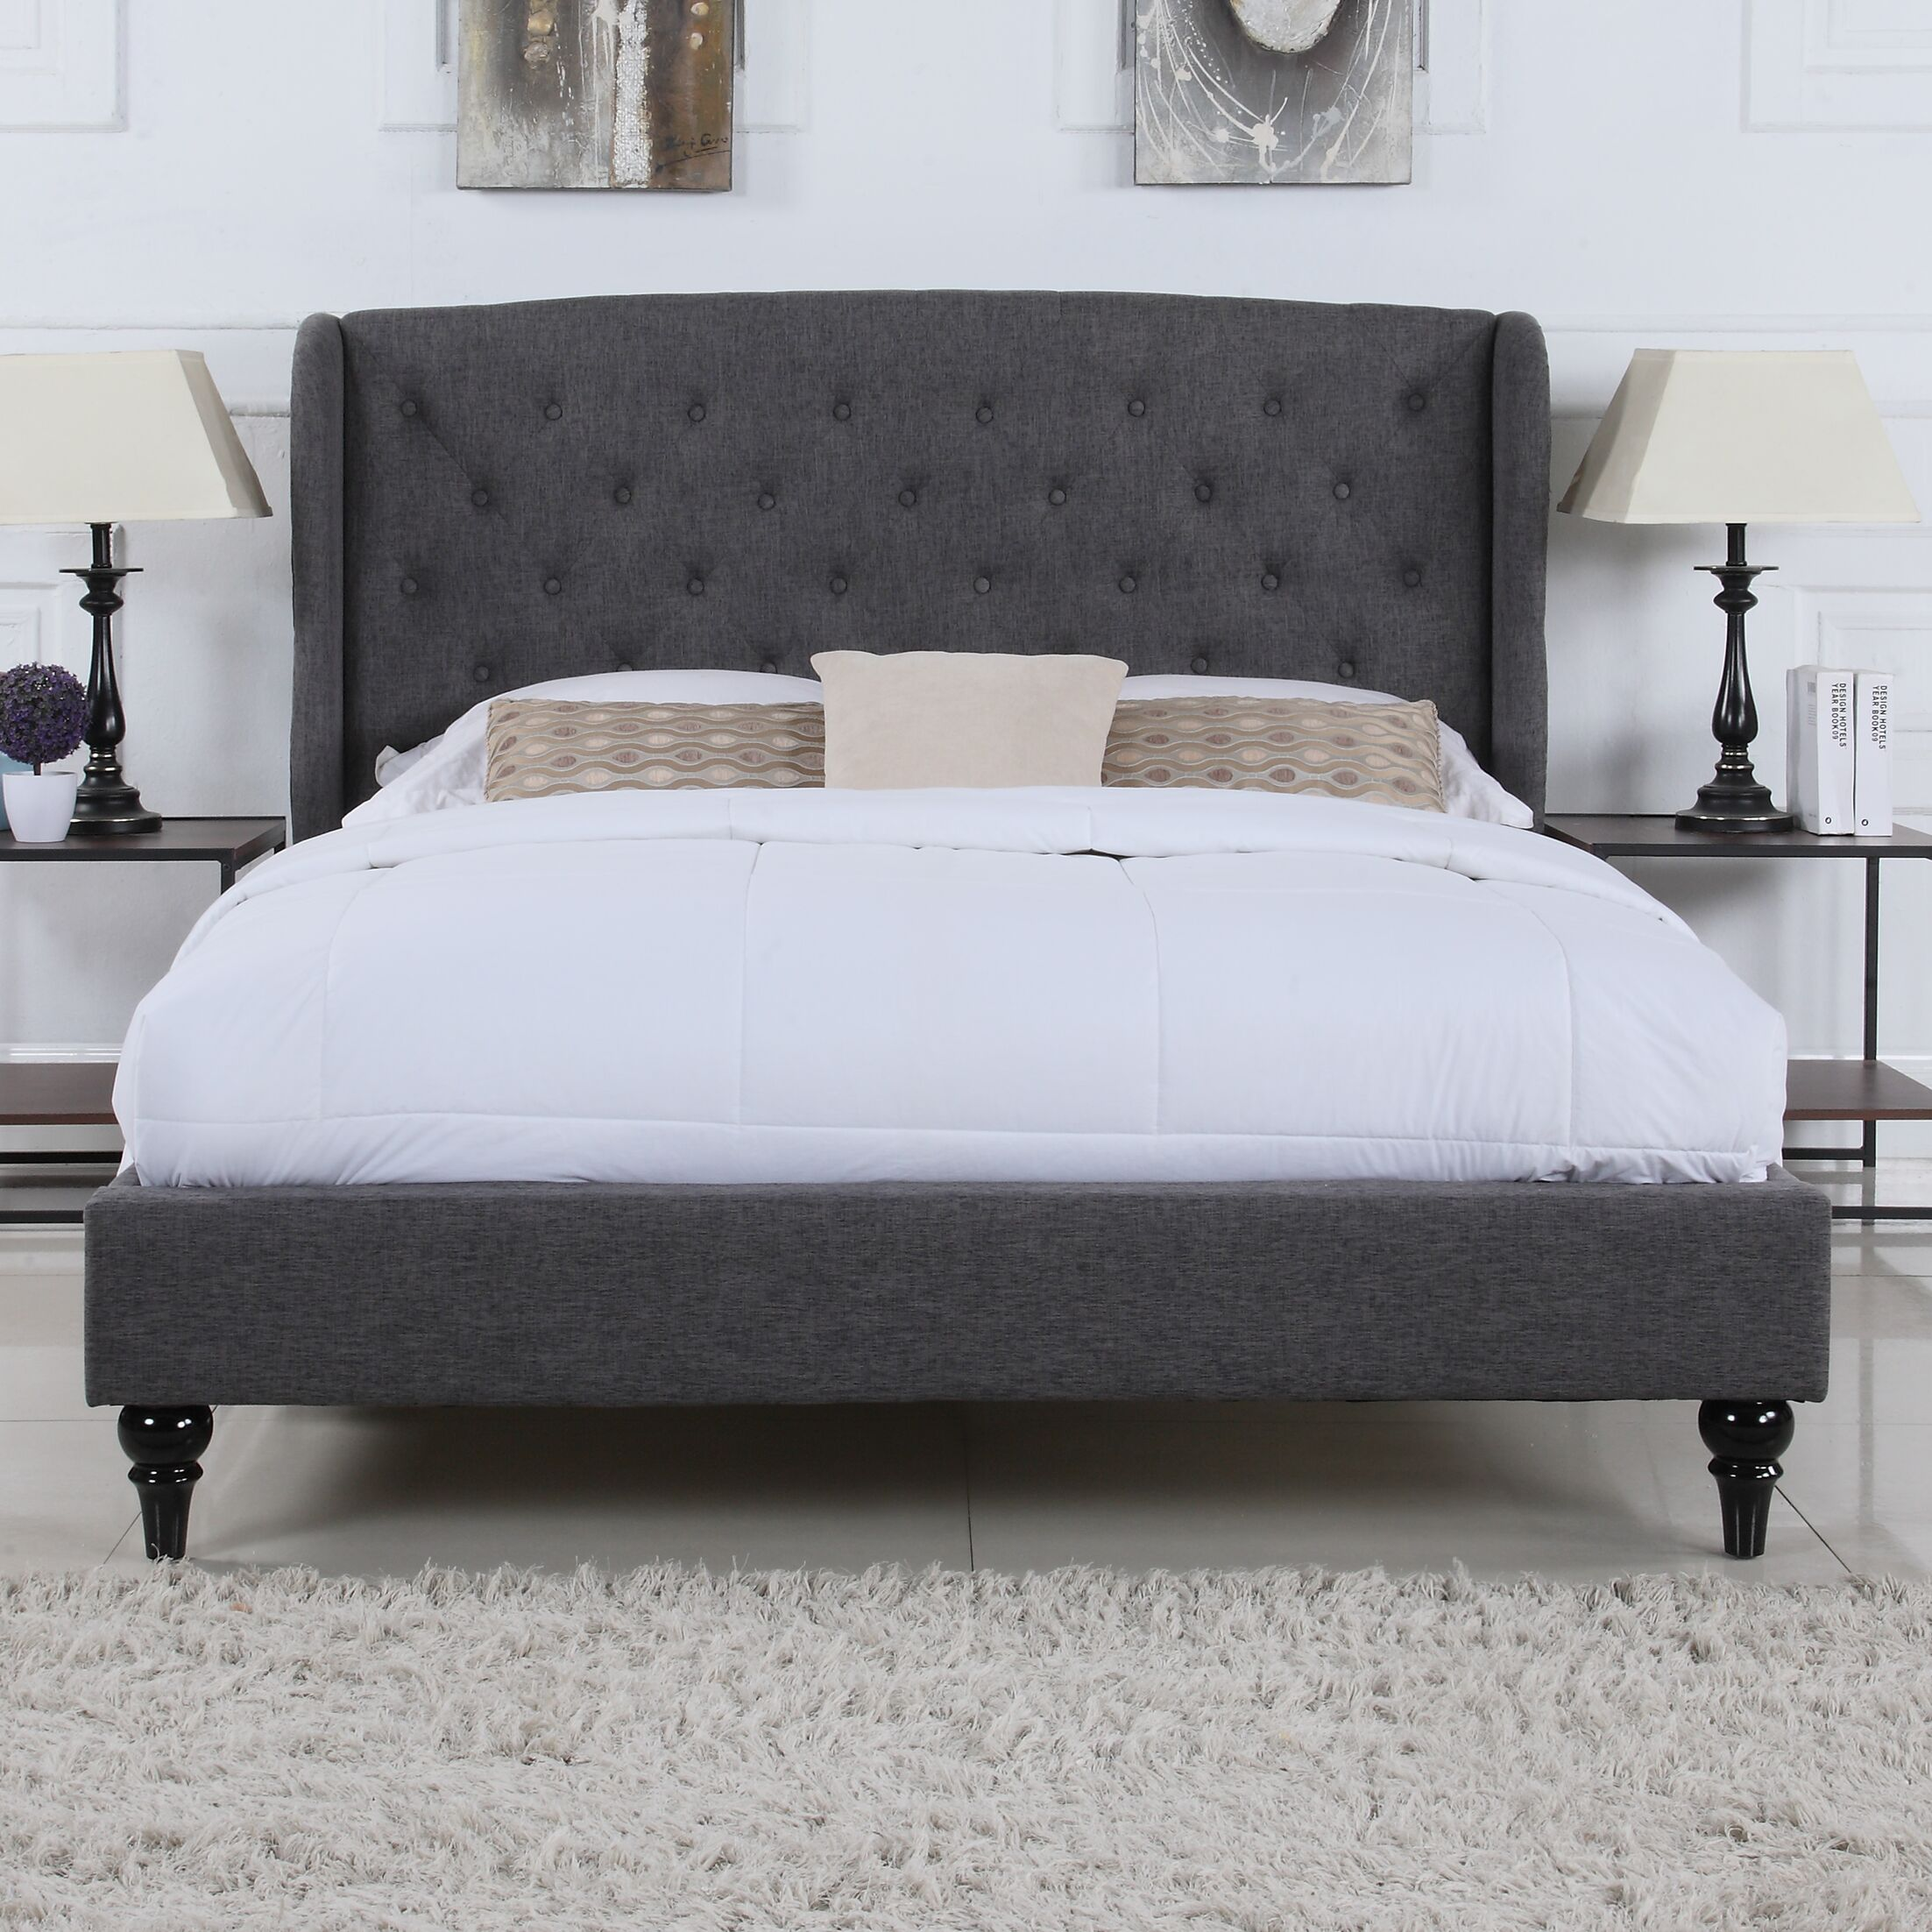 Rebello Classic Upholstered Platform Bed Size: Full/Double, Color: Gray